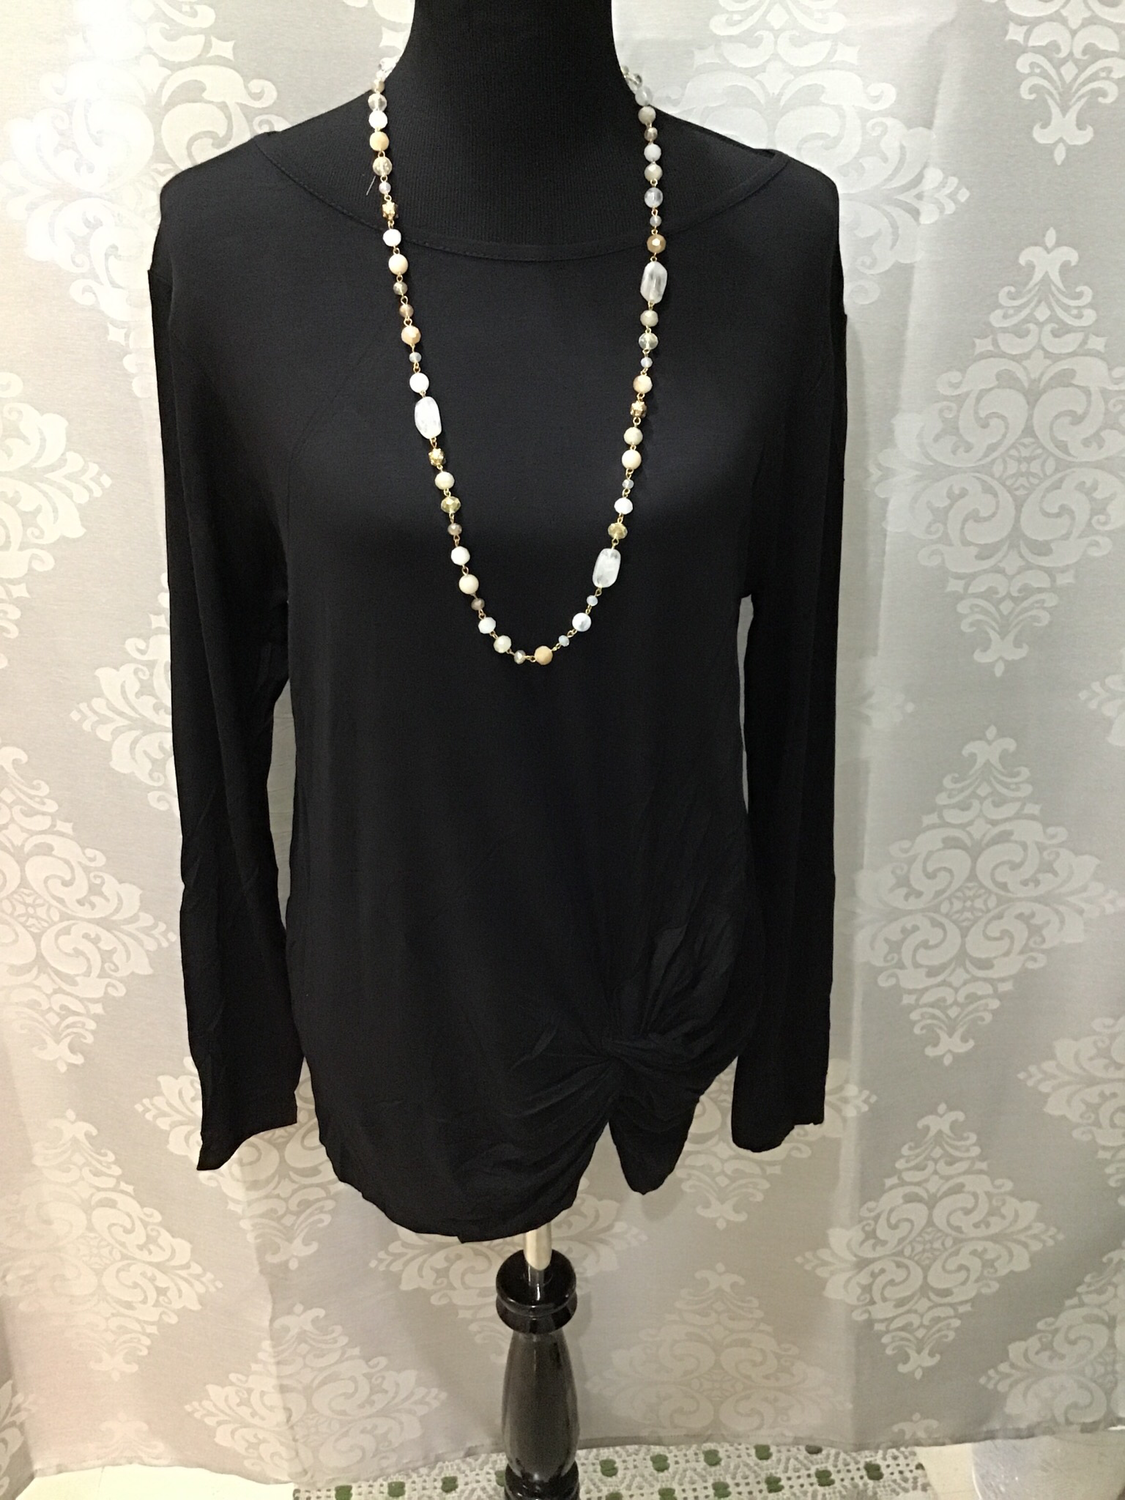 Black long sleeved top with knotted bottom